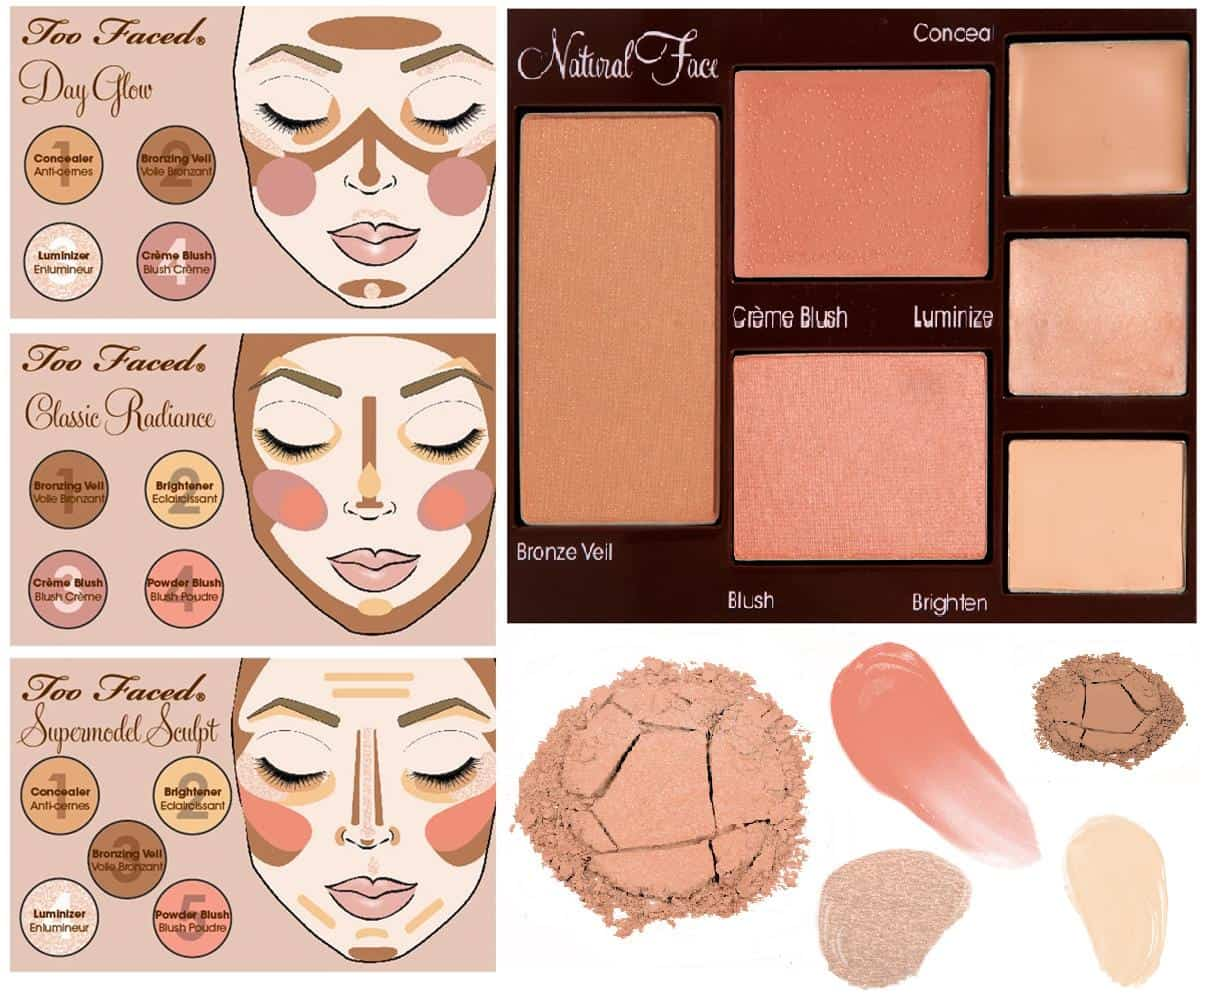 too_faced_natural_face